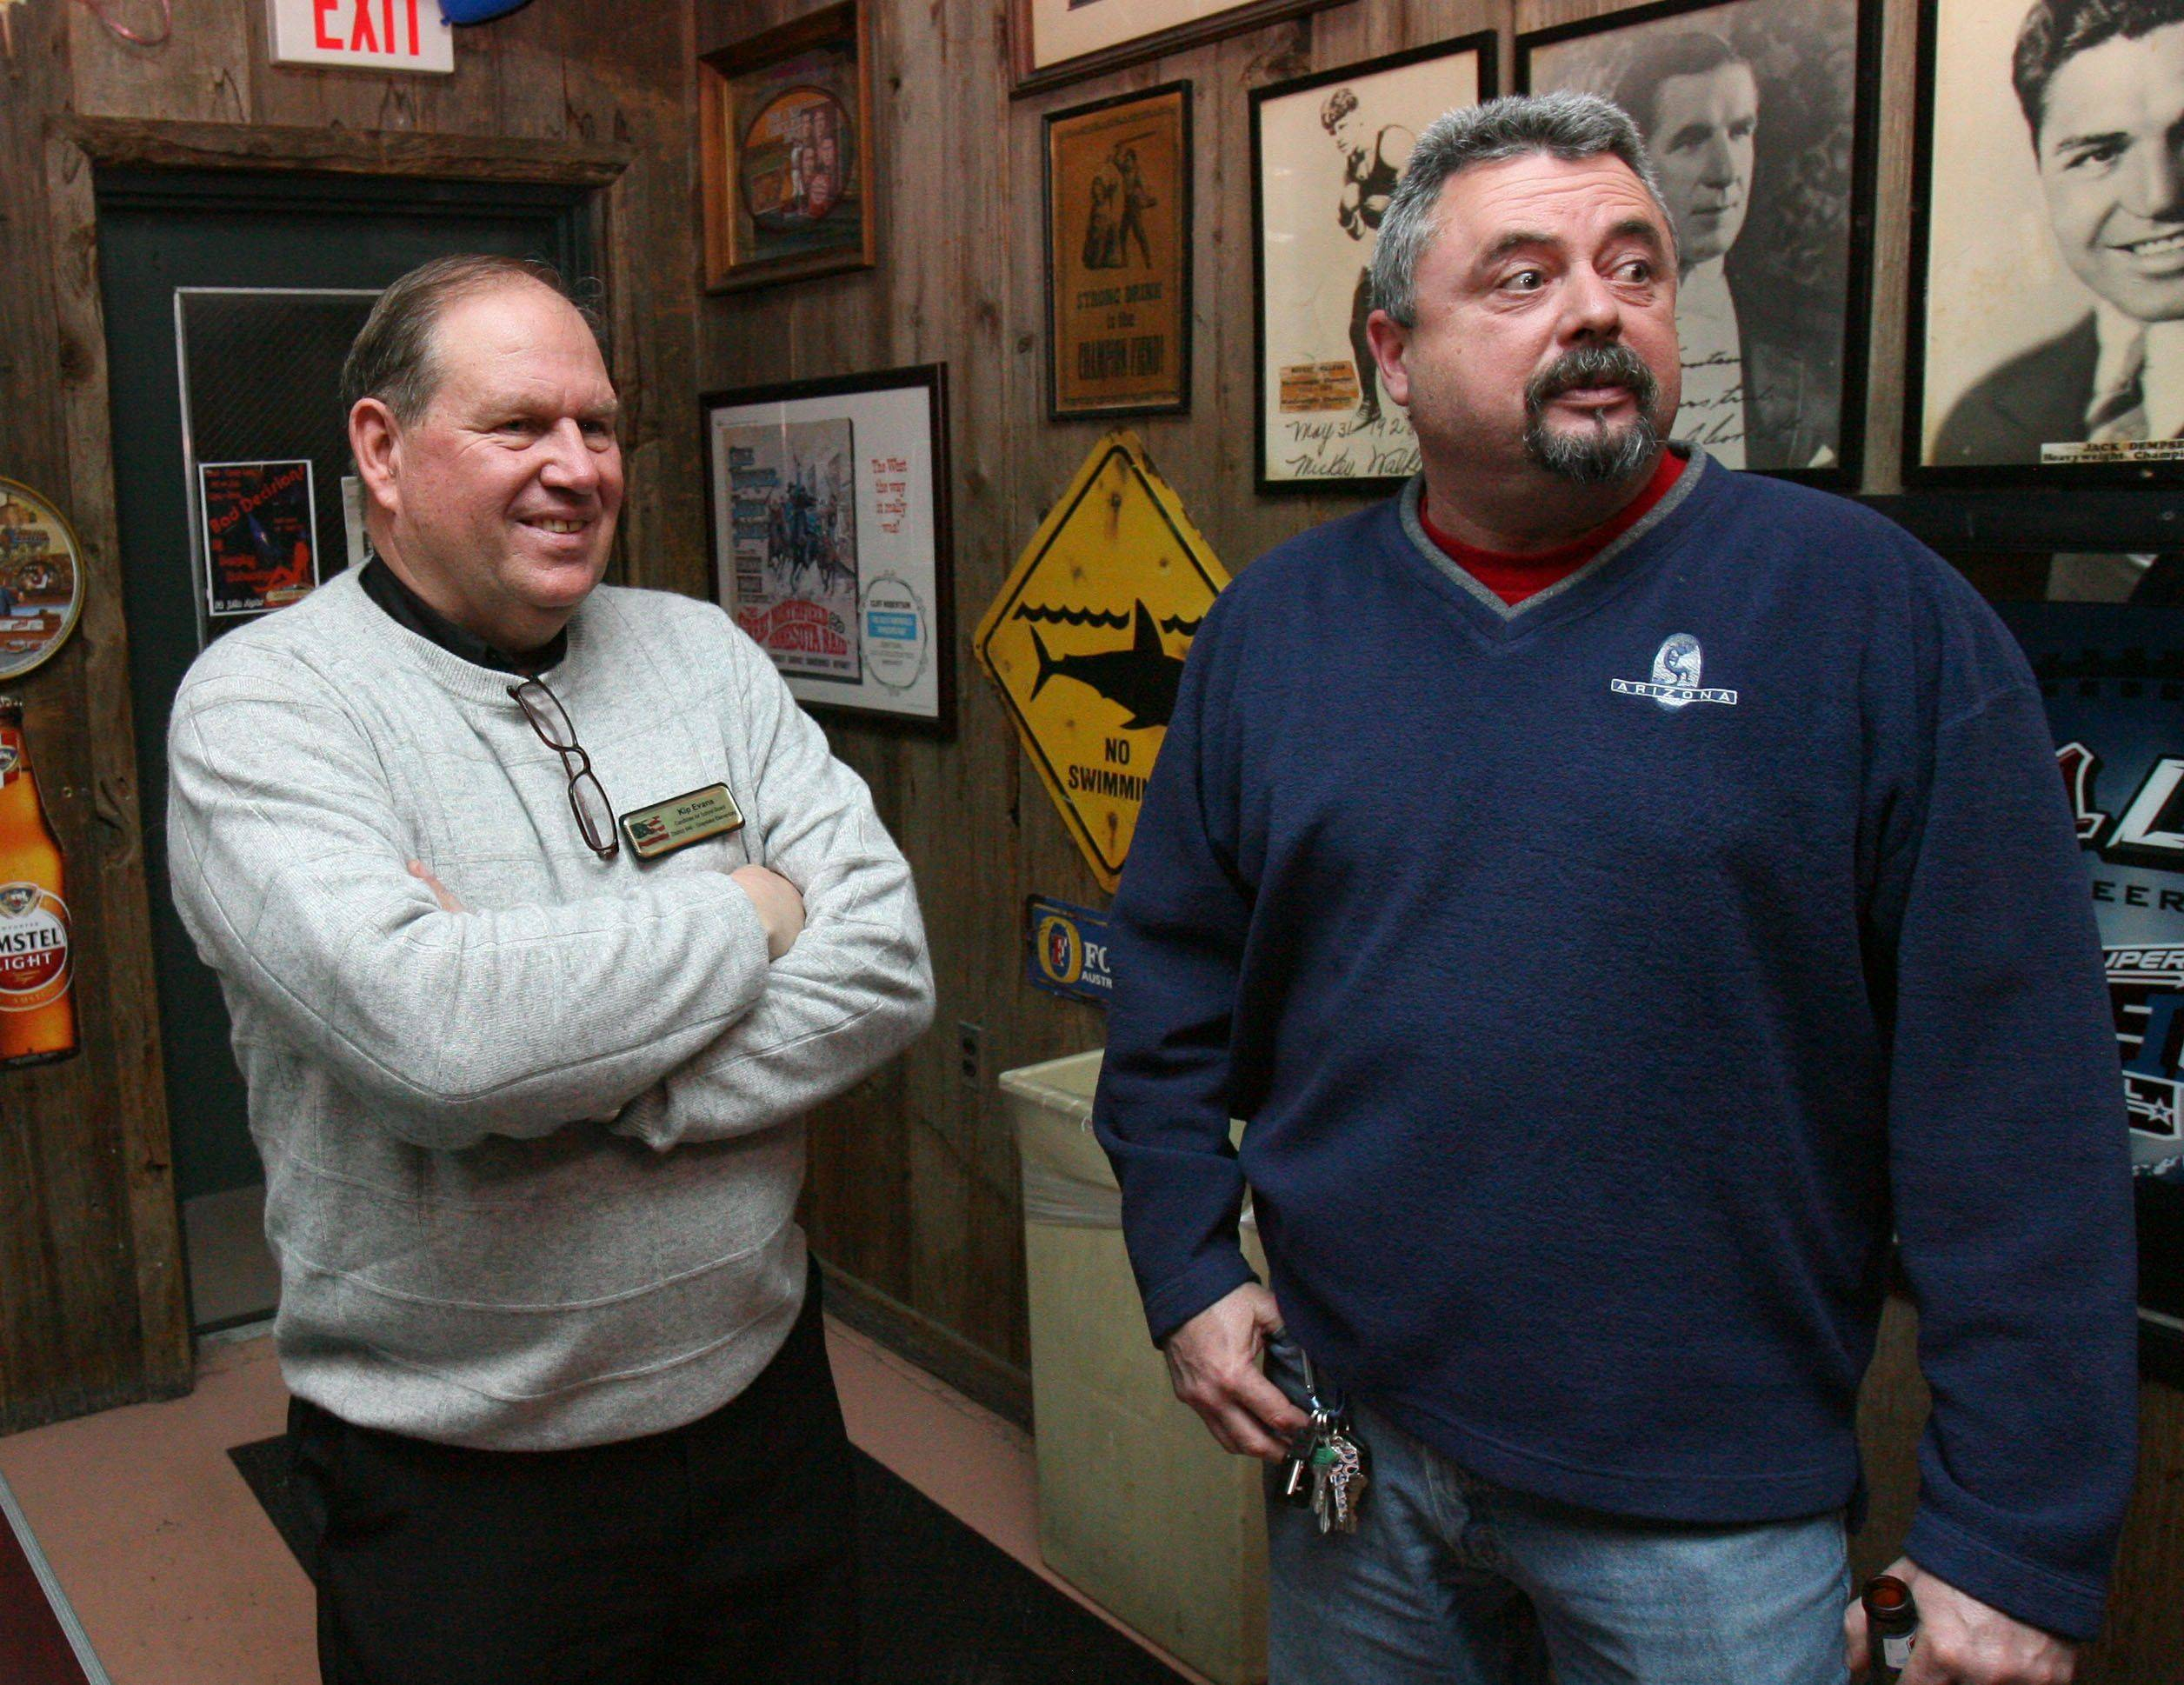 Newly elected Grayslake District Elementary District 46 board member Kip Evans, left, talks with Avon Township Highway Commissioner Tom Brust on Tuesday night at Last Chance Saloon in Grayslake.